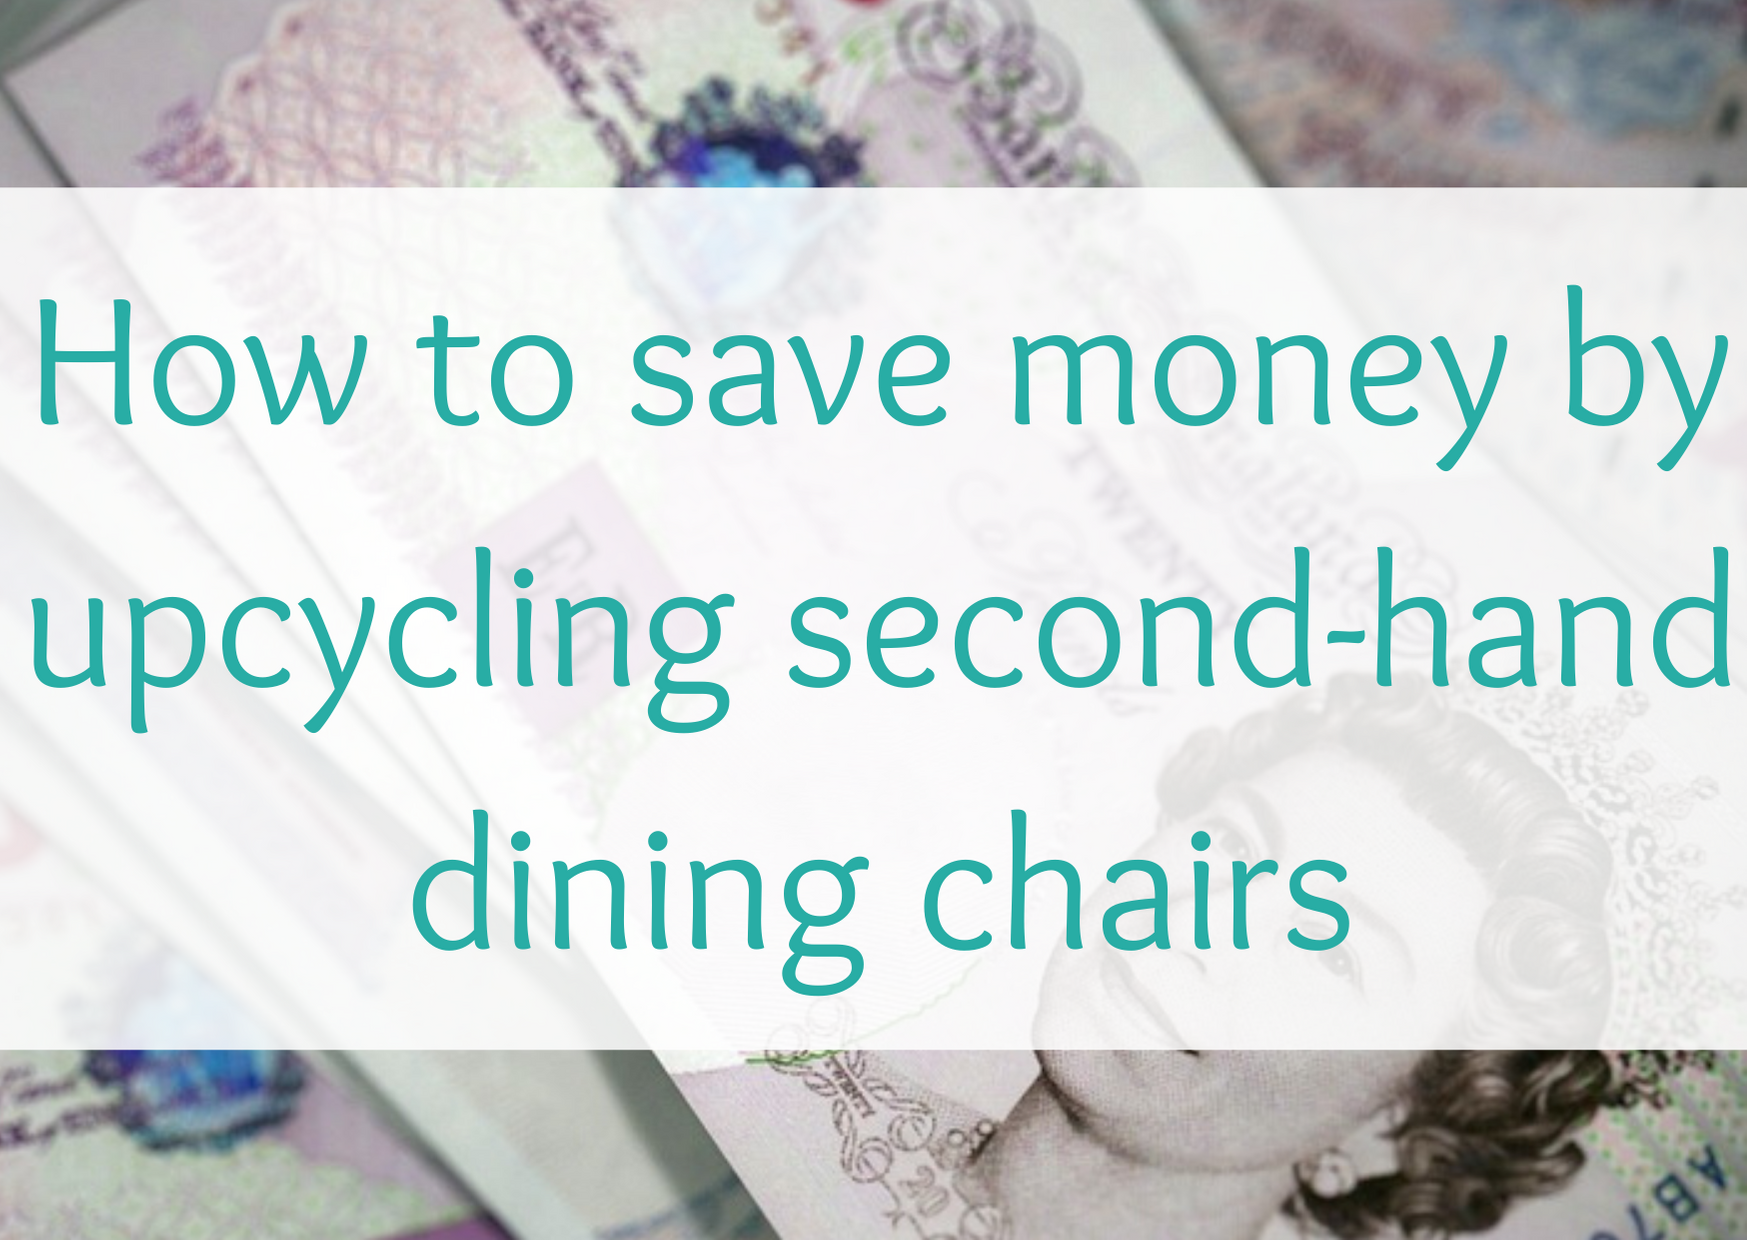 How to save money and upcycle second-hand dining chairs